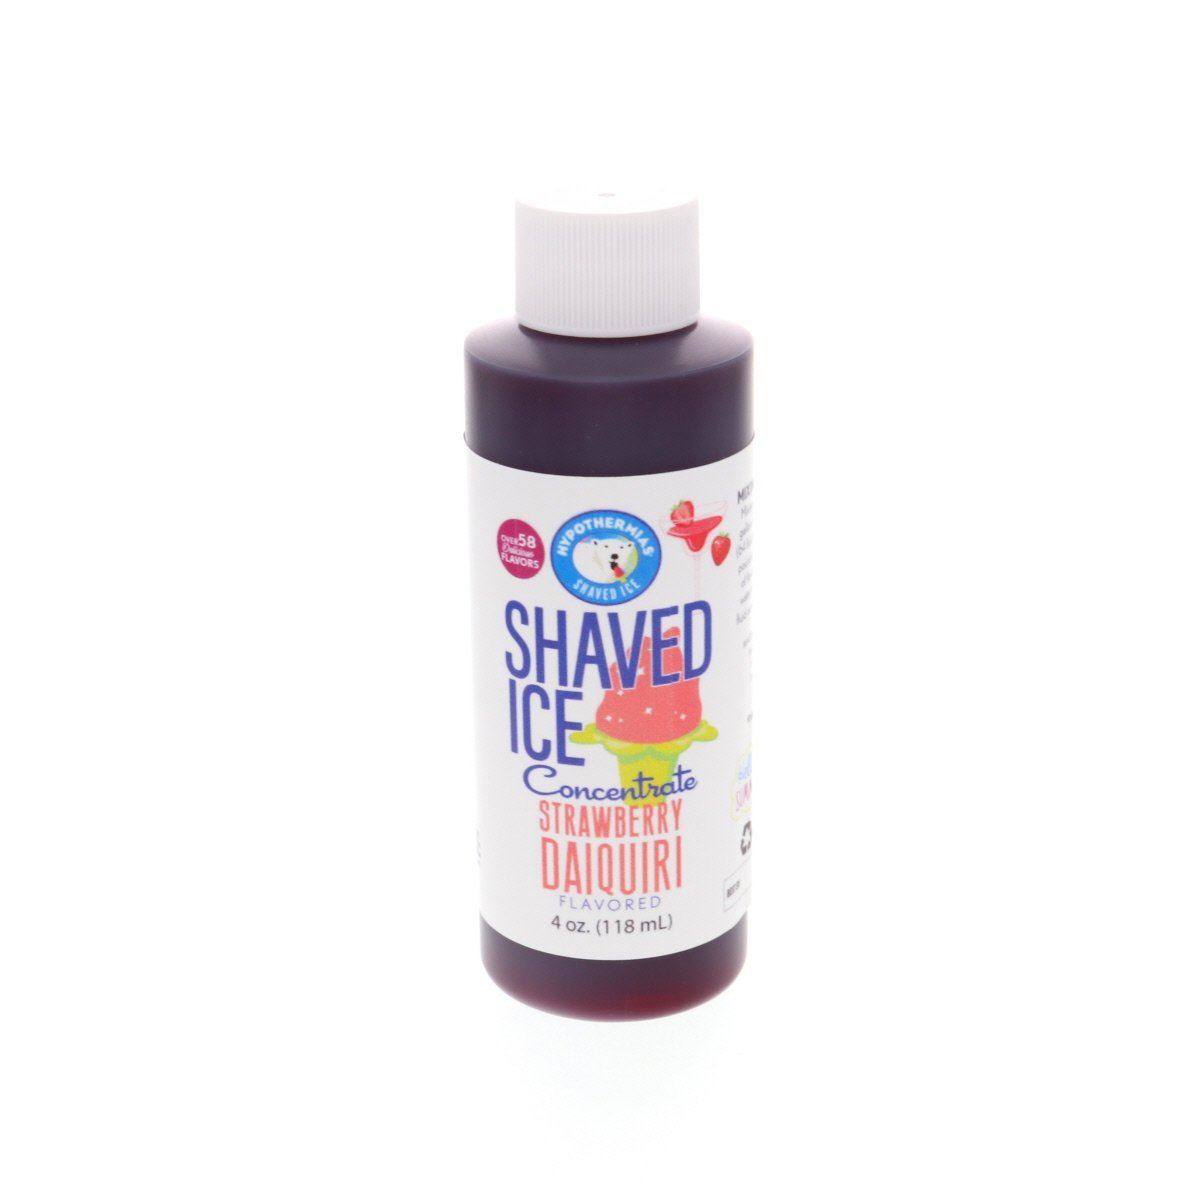 ice shaved flavor concentrate strawberry daiquiri